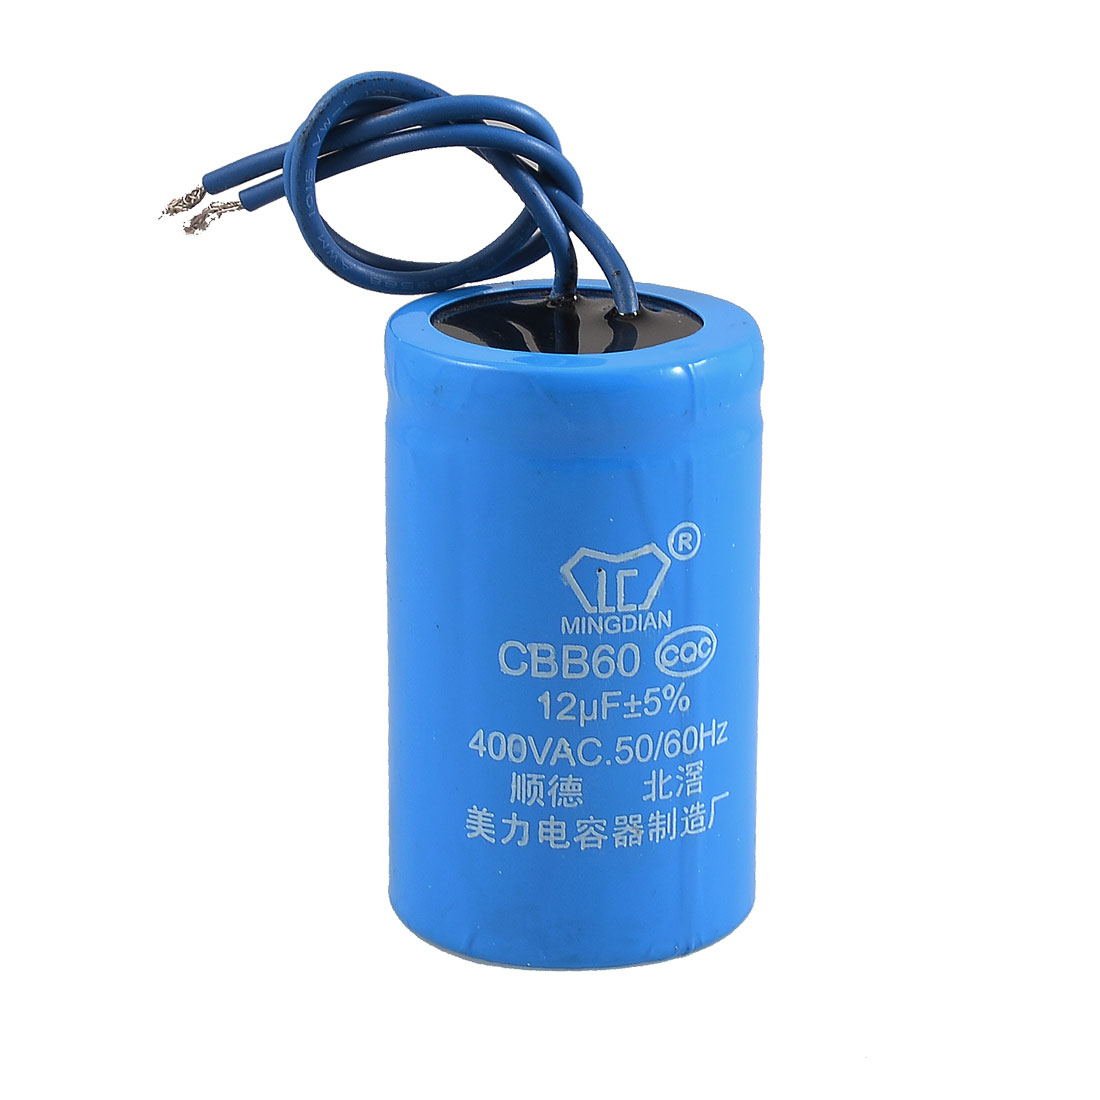 AC 400V 12uF Blue Shell Washing Machine Capacitor CBB60